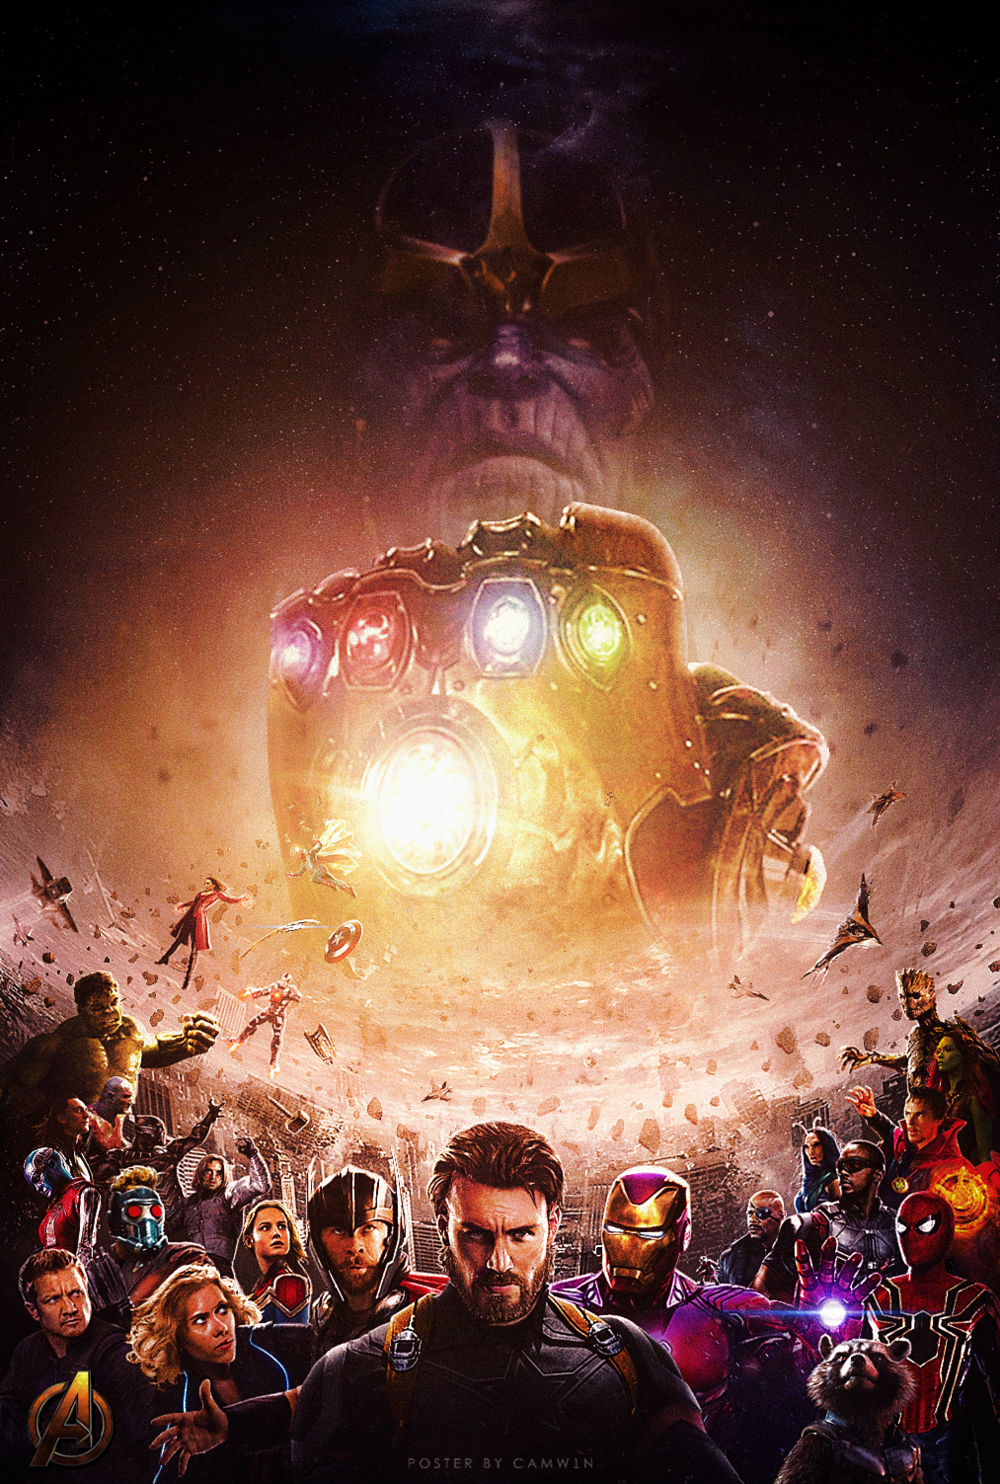 Cool Fan-Made Poster For AVENGERS: INFINITY WAR — GeekTyrant